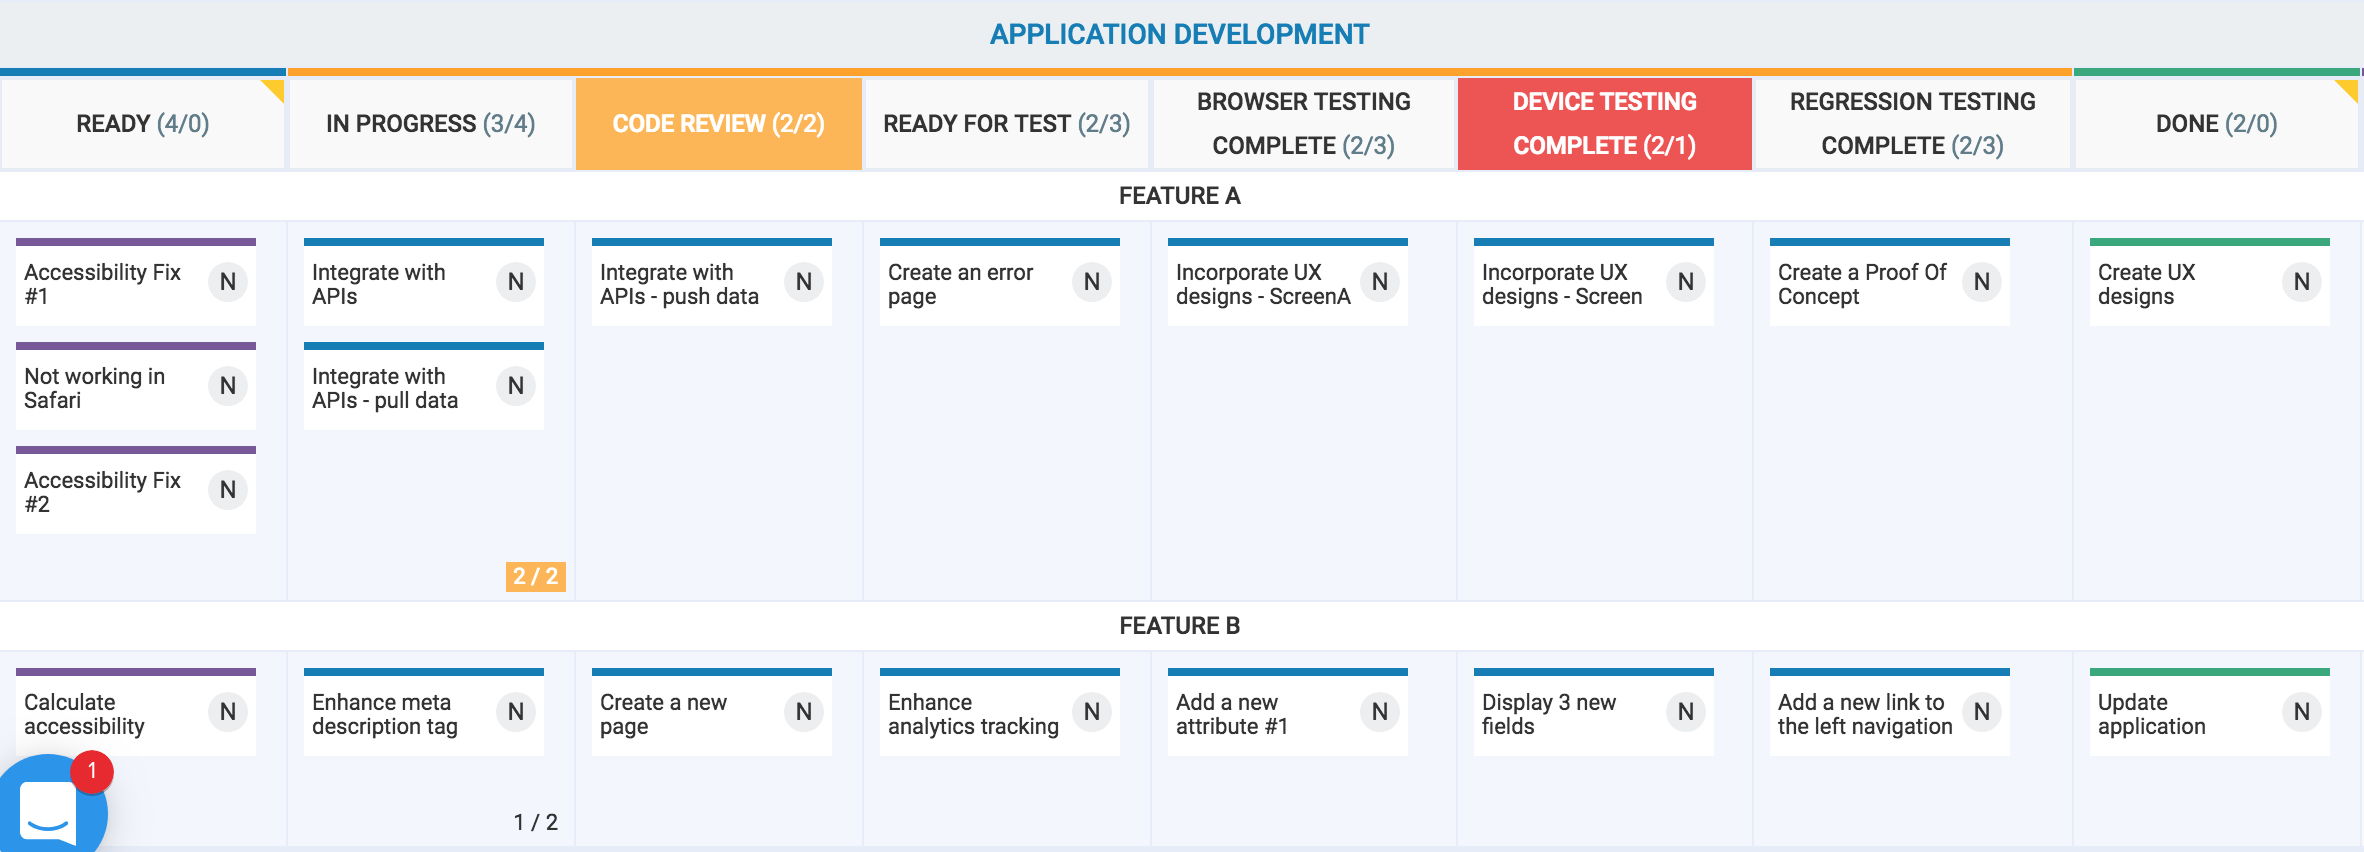 Sample Kanban Board for Application Development